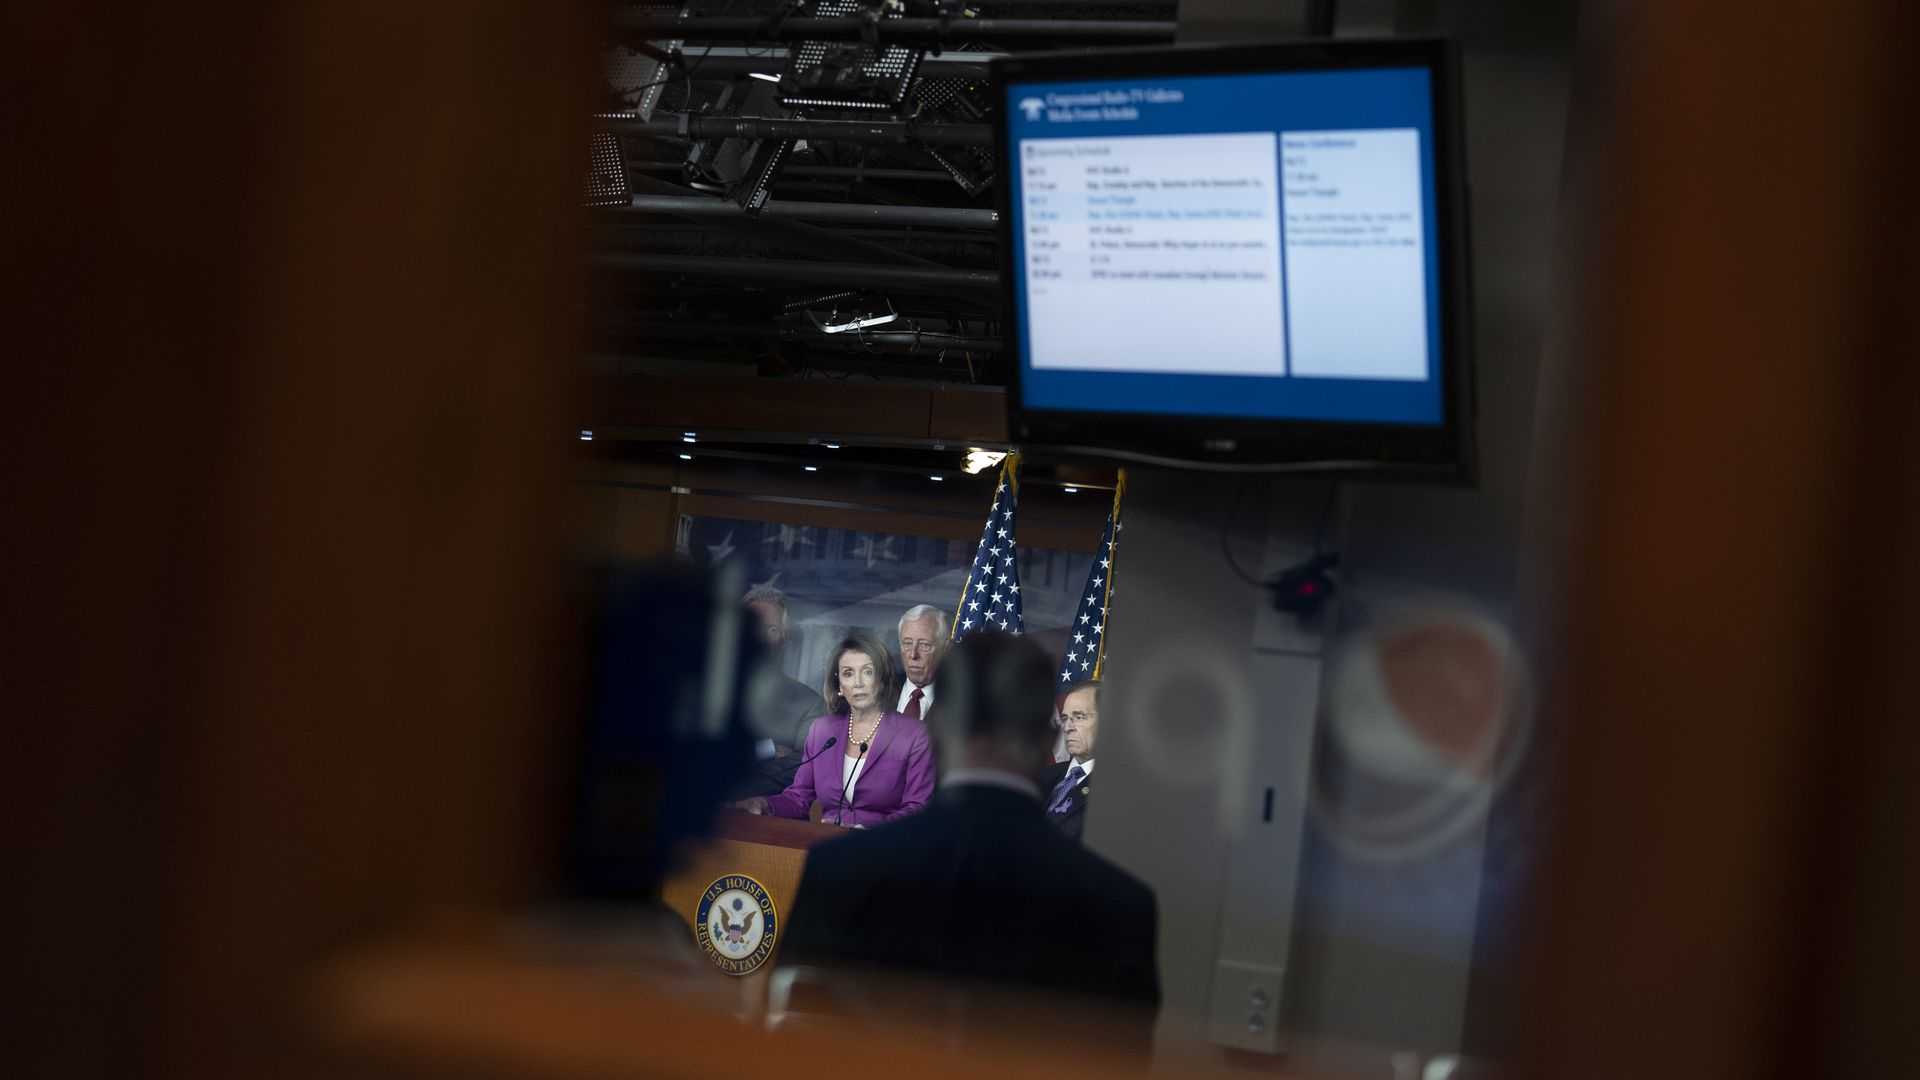 In this image, Democratic leaders stand on stage in the background of a blurred camera shot. They are standing underneath a presentation screen.